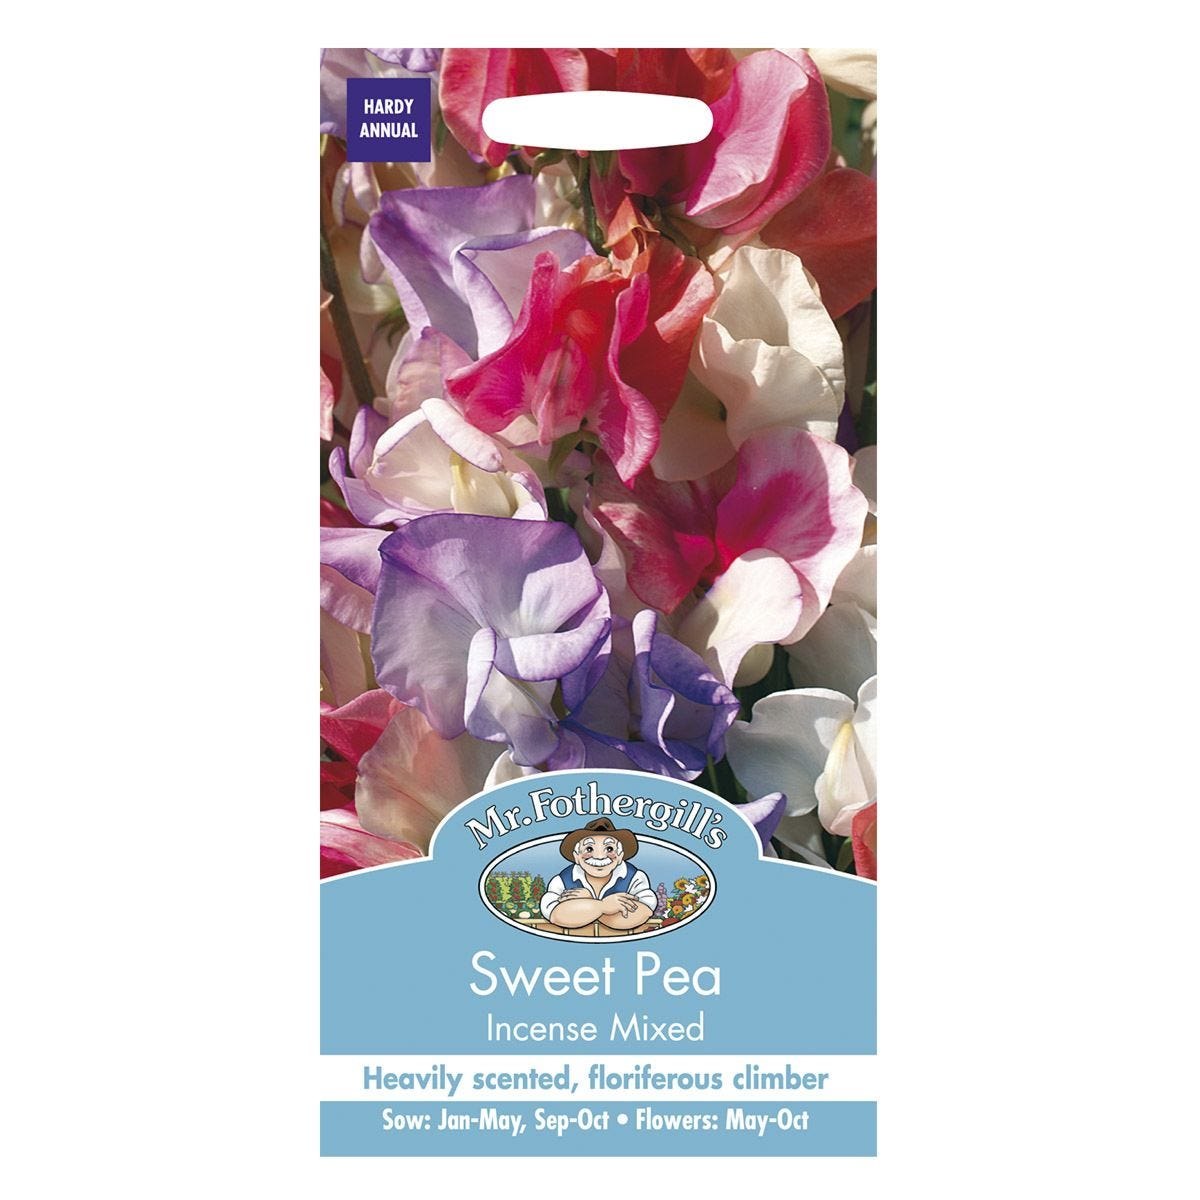 Mr Fothergill's Sweet Pea Incense Mixed Seeds